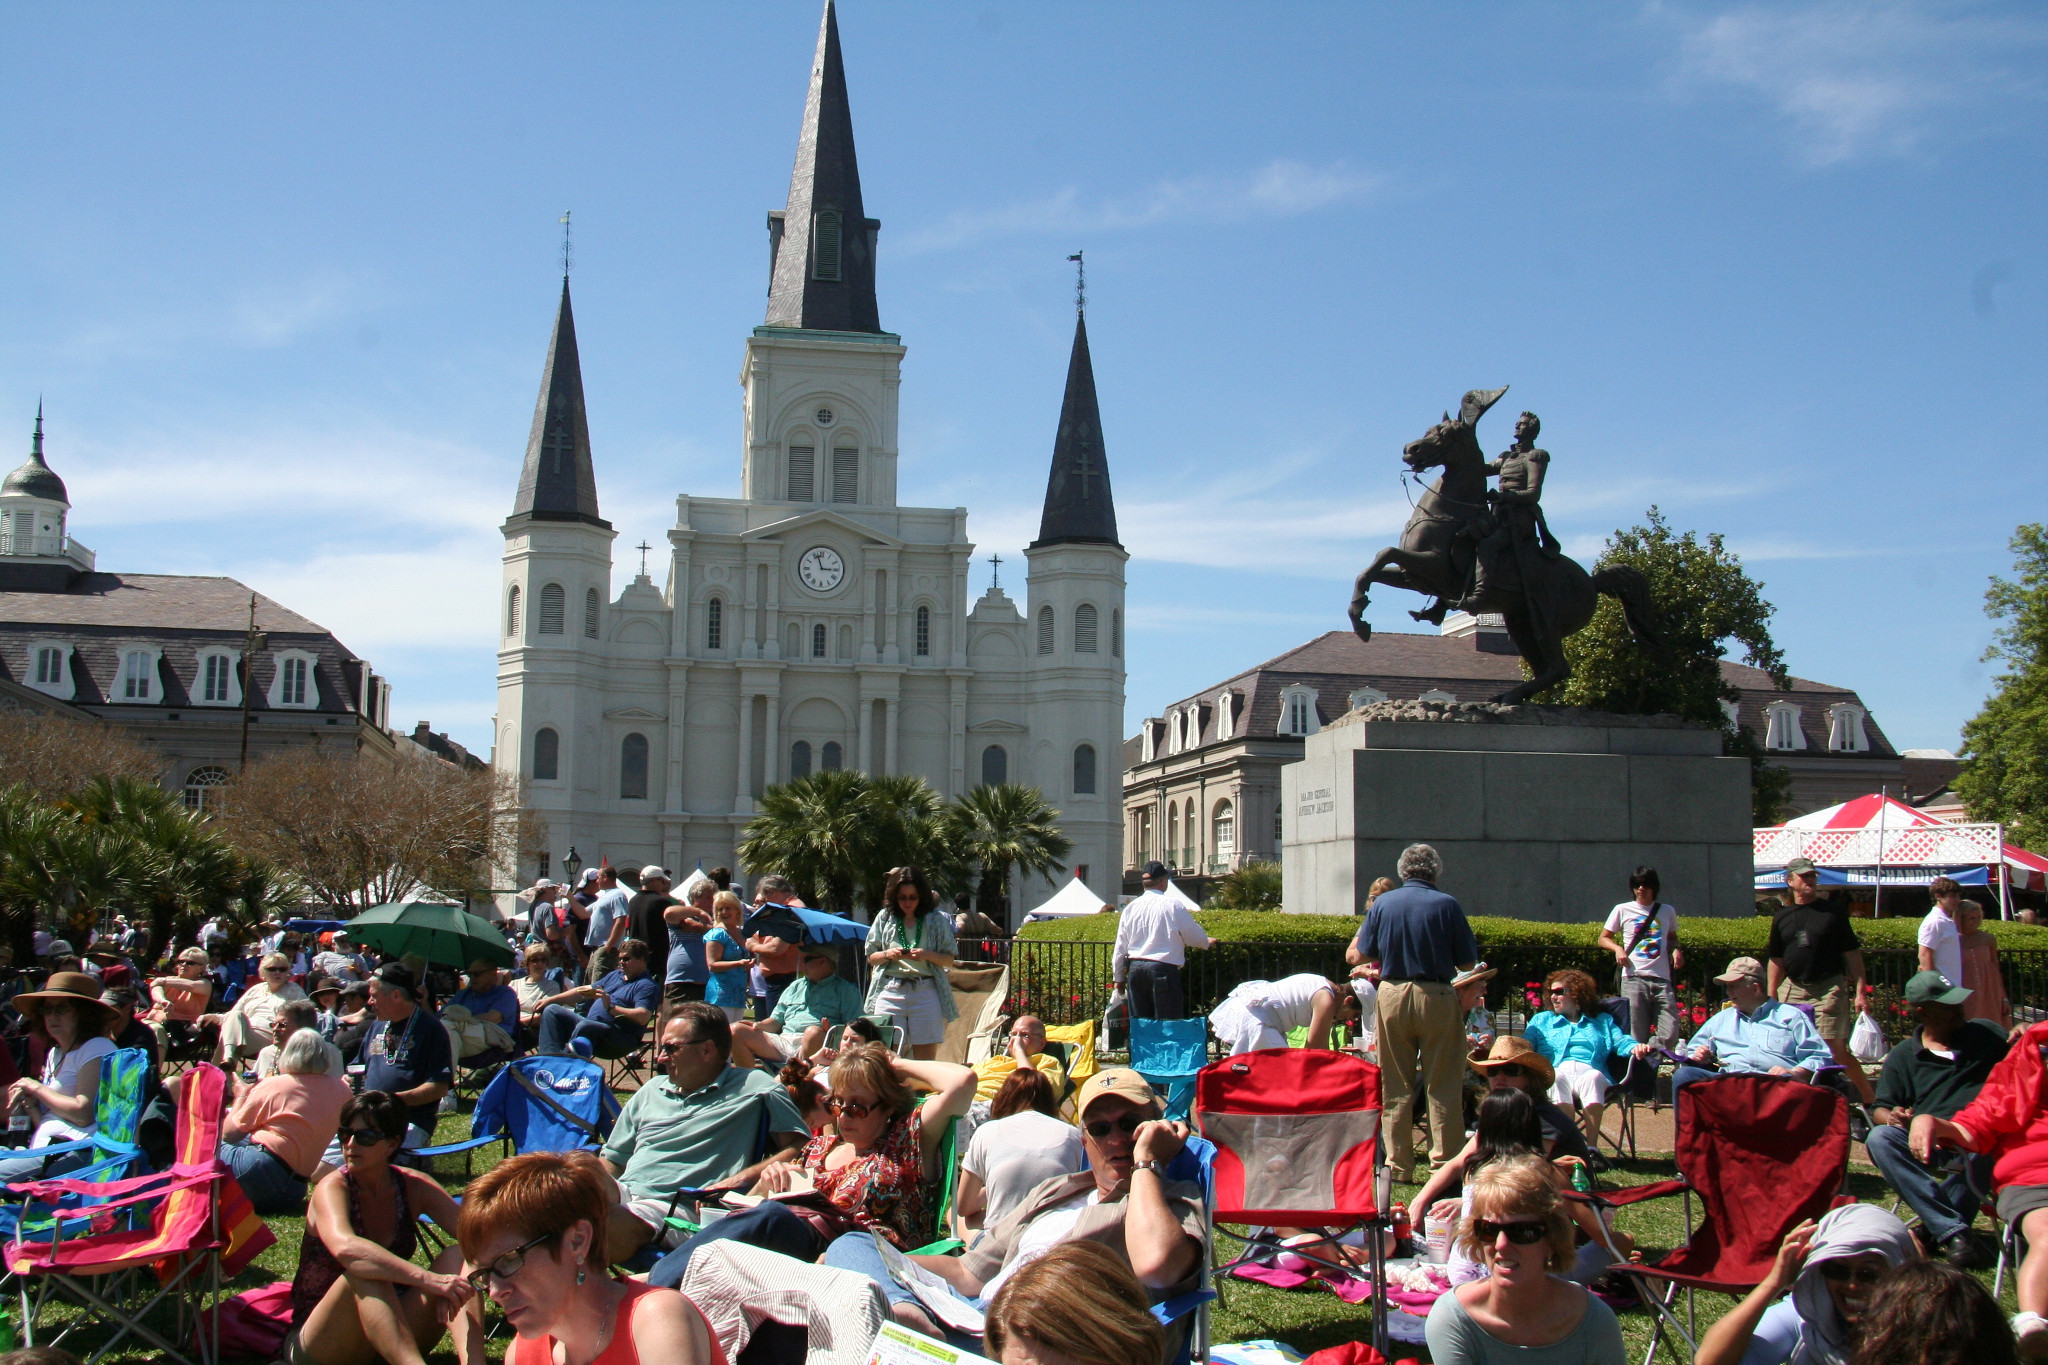 Jackson Square is one of 23 stages at French Quarter Fest, which features more than 1,700 musicians and 300 performances over four days, plus incredible food and art at every turn.